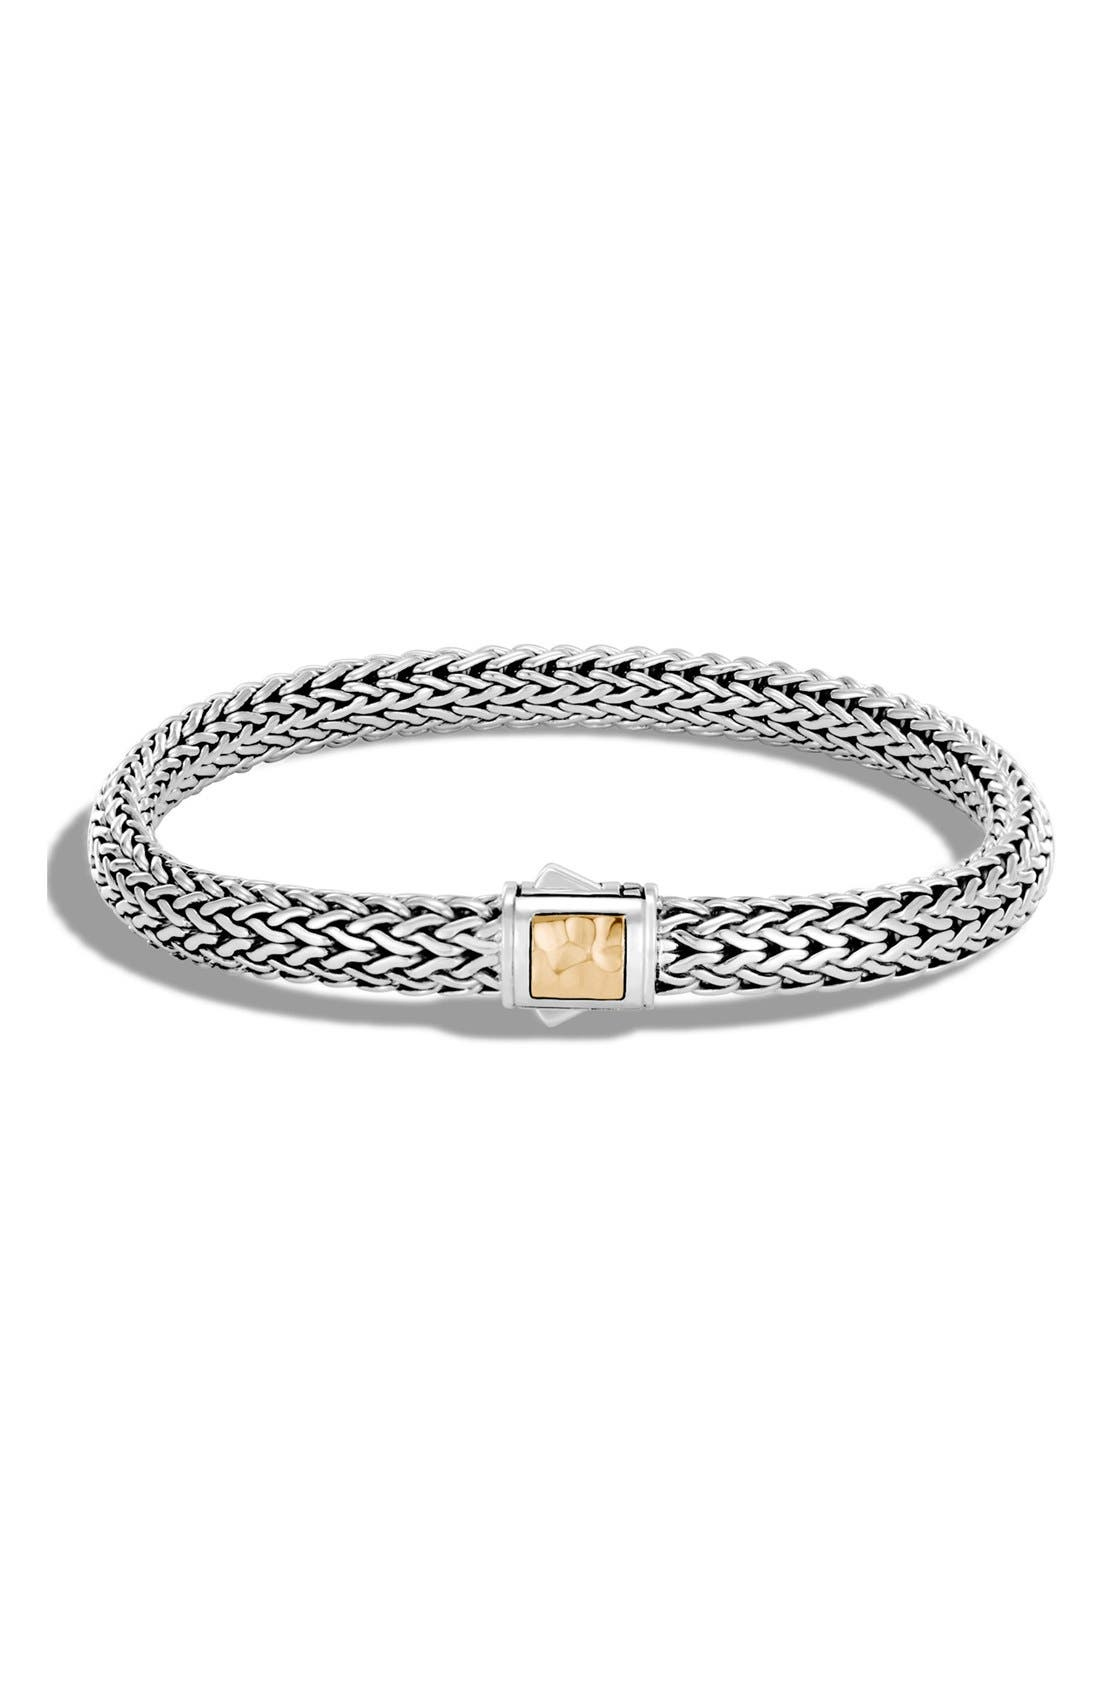 JOHN HARDY Classic Chain 6.5mm Hammered Clasp Bracelet